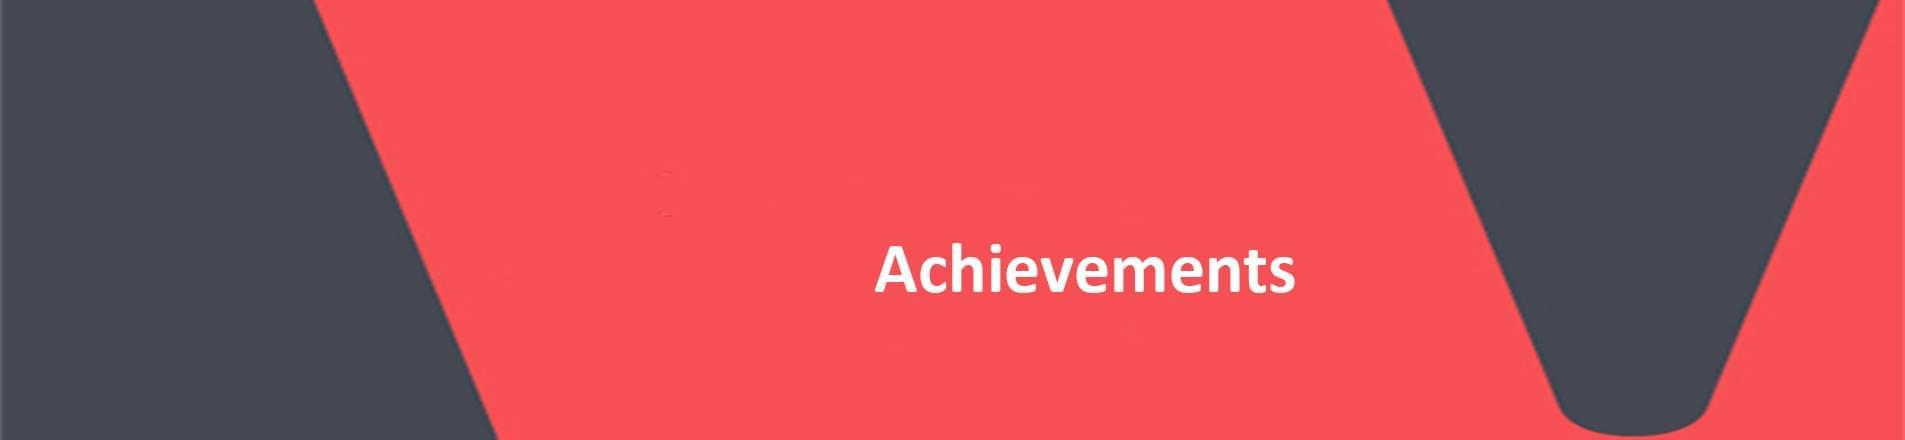 The word achievements on a red VERCIDA branded background